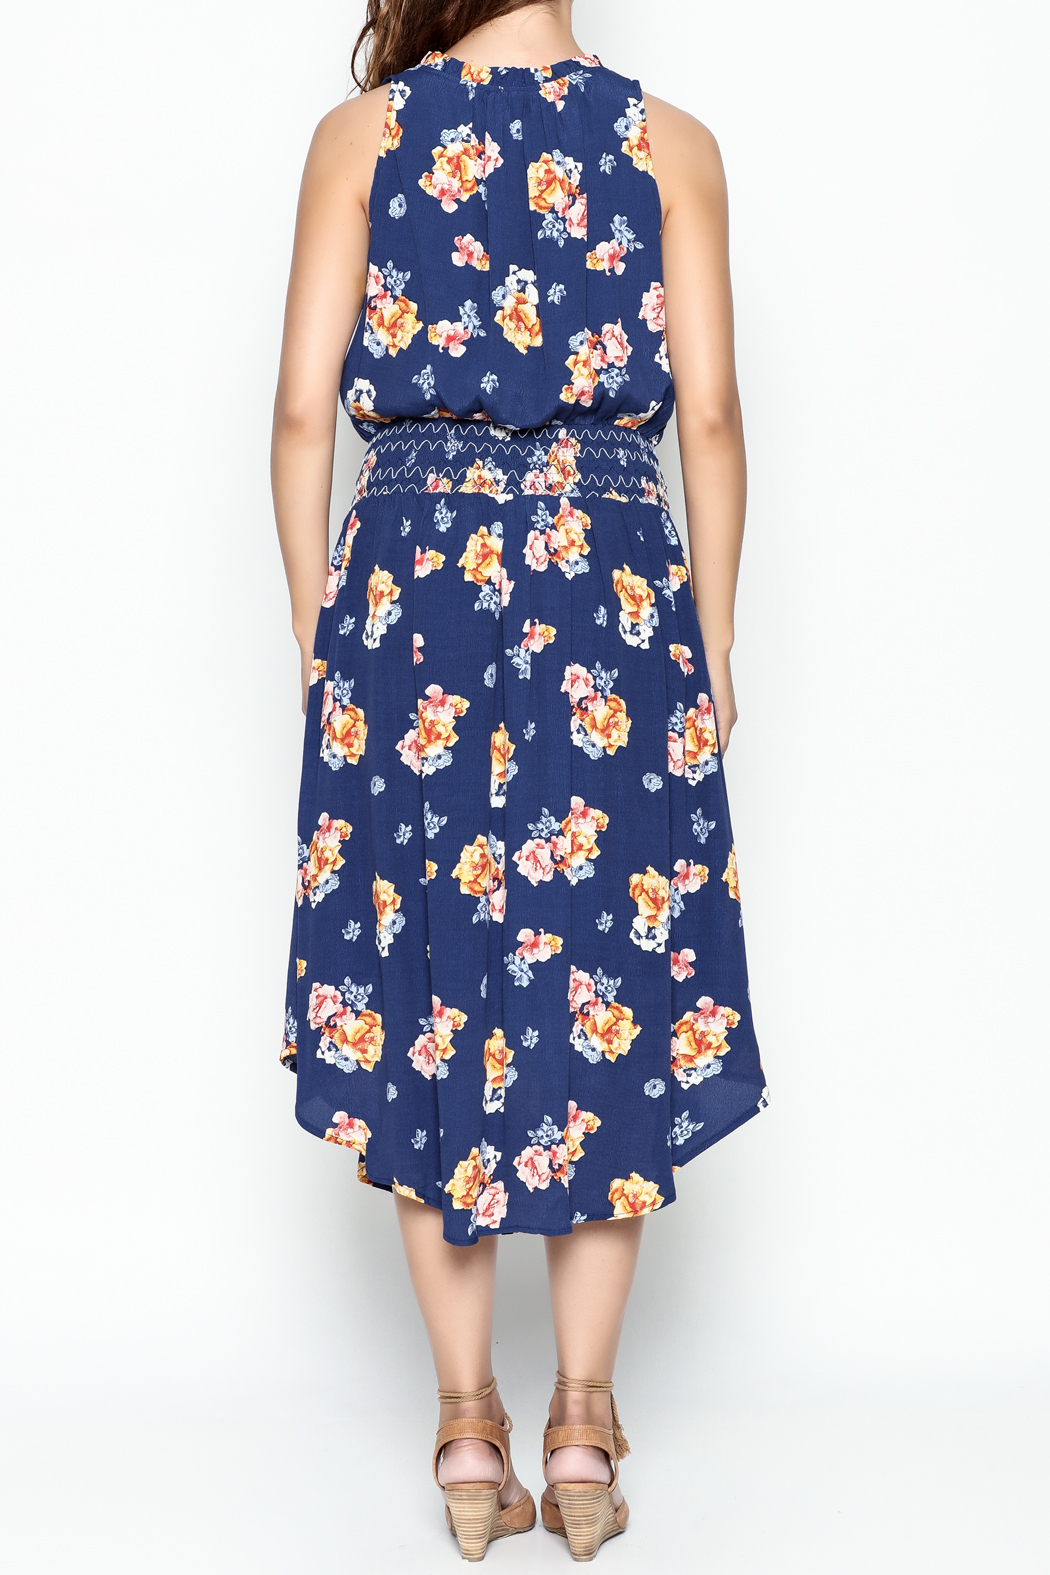 Current Air Bright Floral Dress - Back Cropped Image